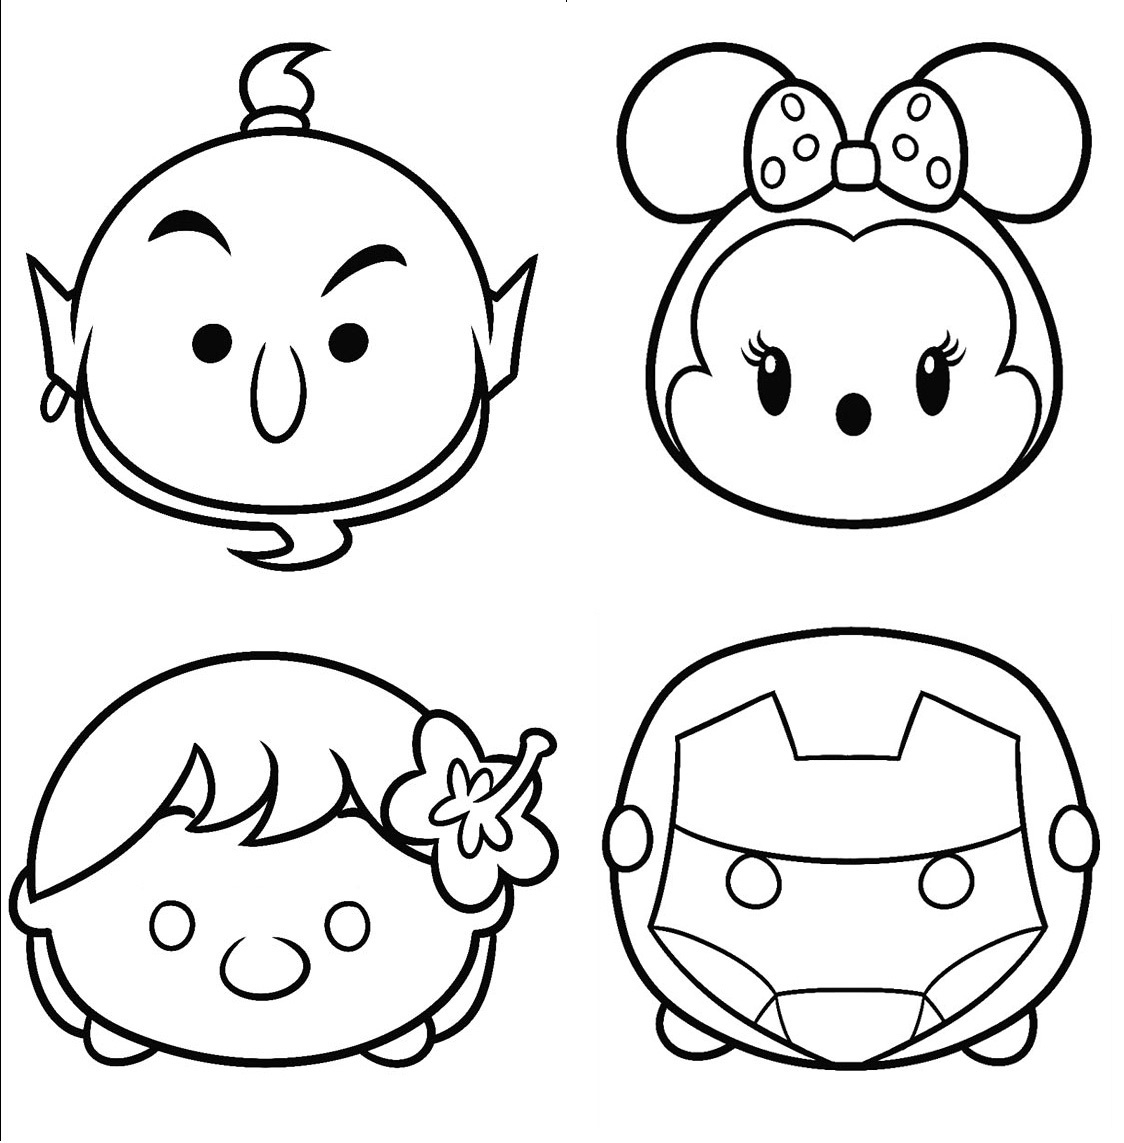 1124x1143 New Tsum Tsum Coloring Pages To Print And Color Design Free